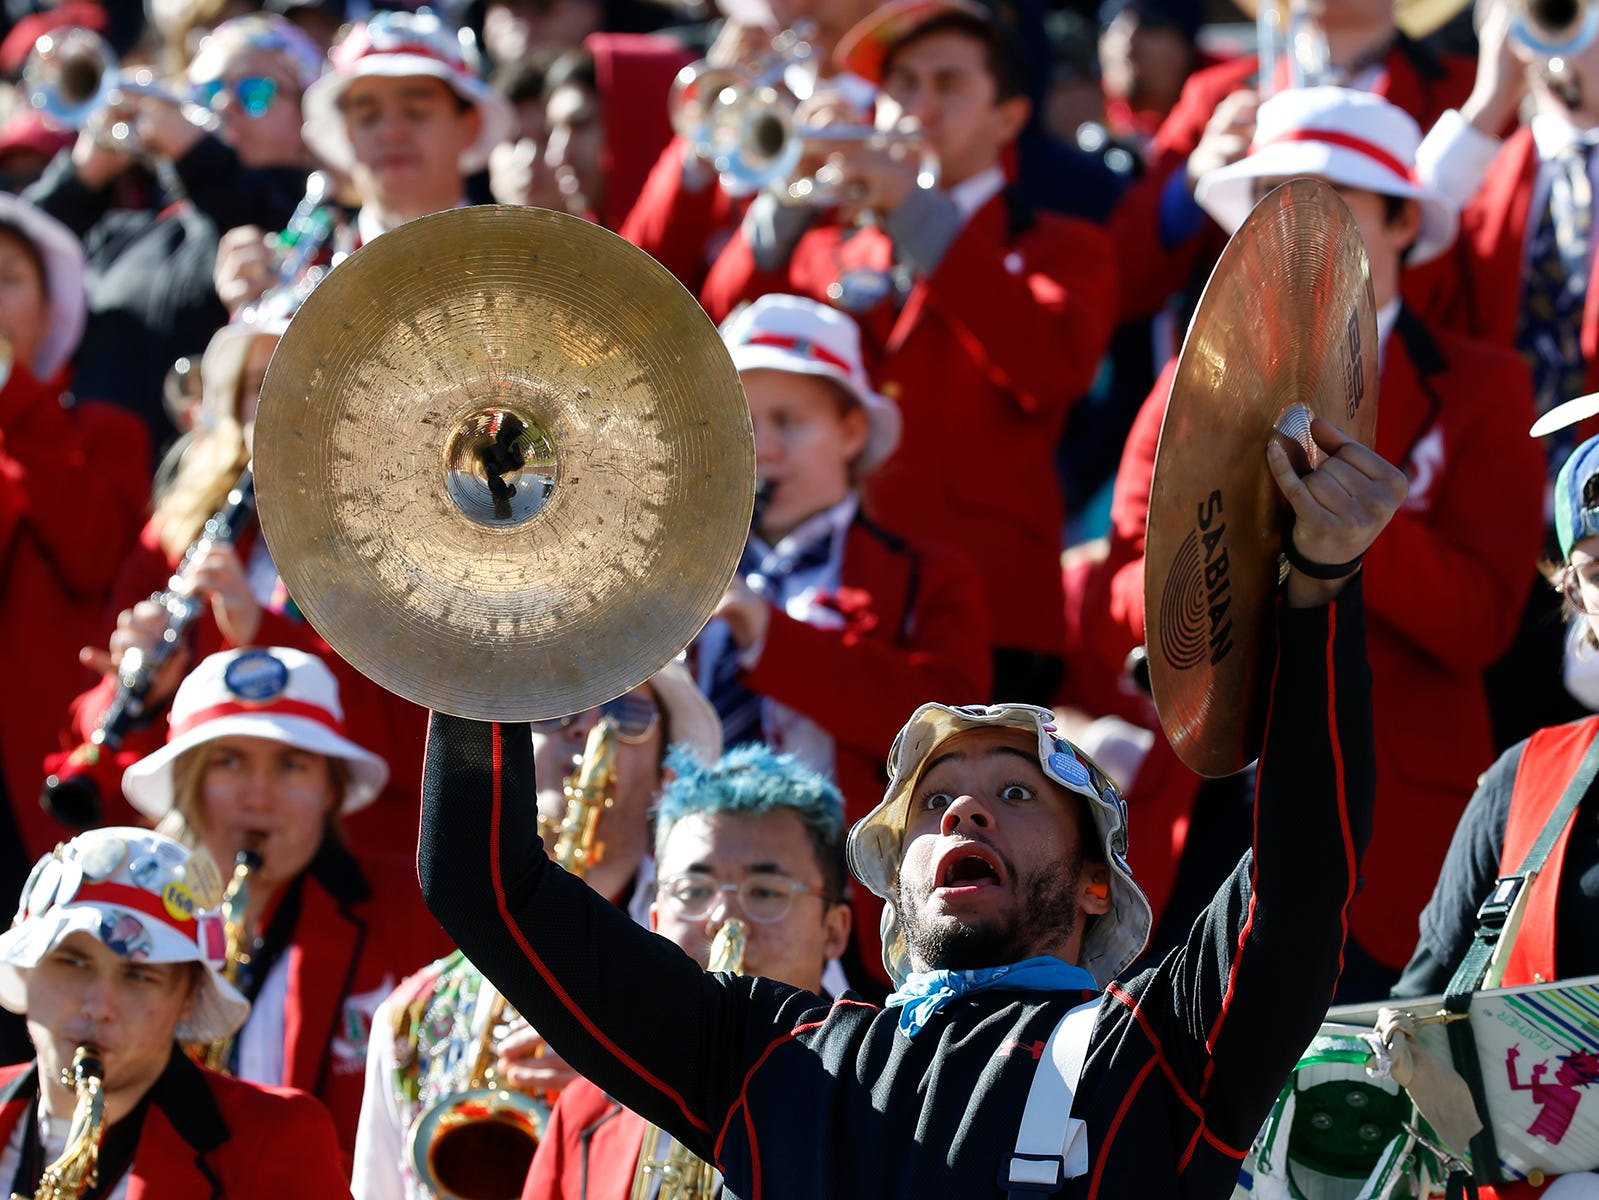 The Stanford band cheers the Cardinal on their way to a 14-13 win over the Pittsburgh Panthers football team Monday, Dec. 31, at the 85th Annual Hyundai Sun Bowl.